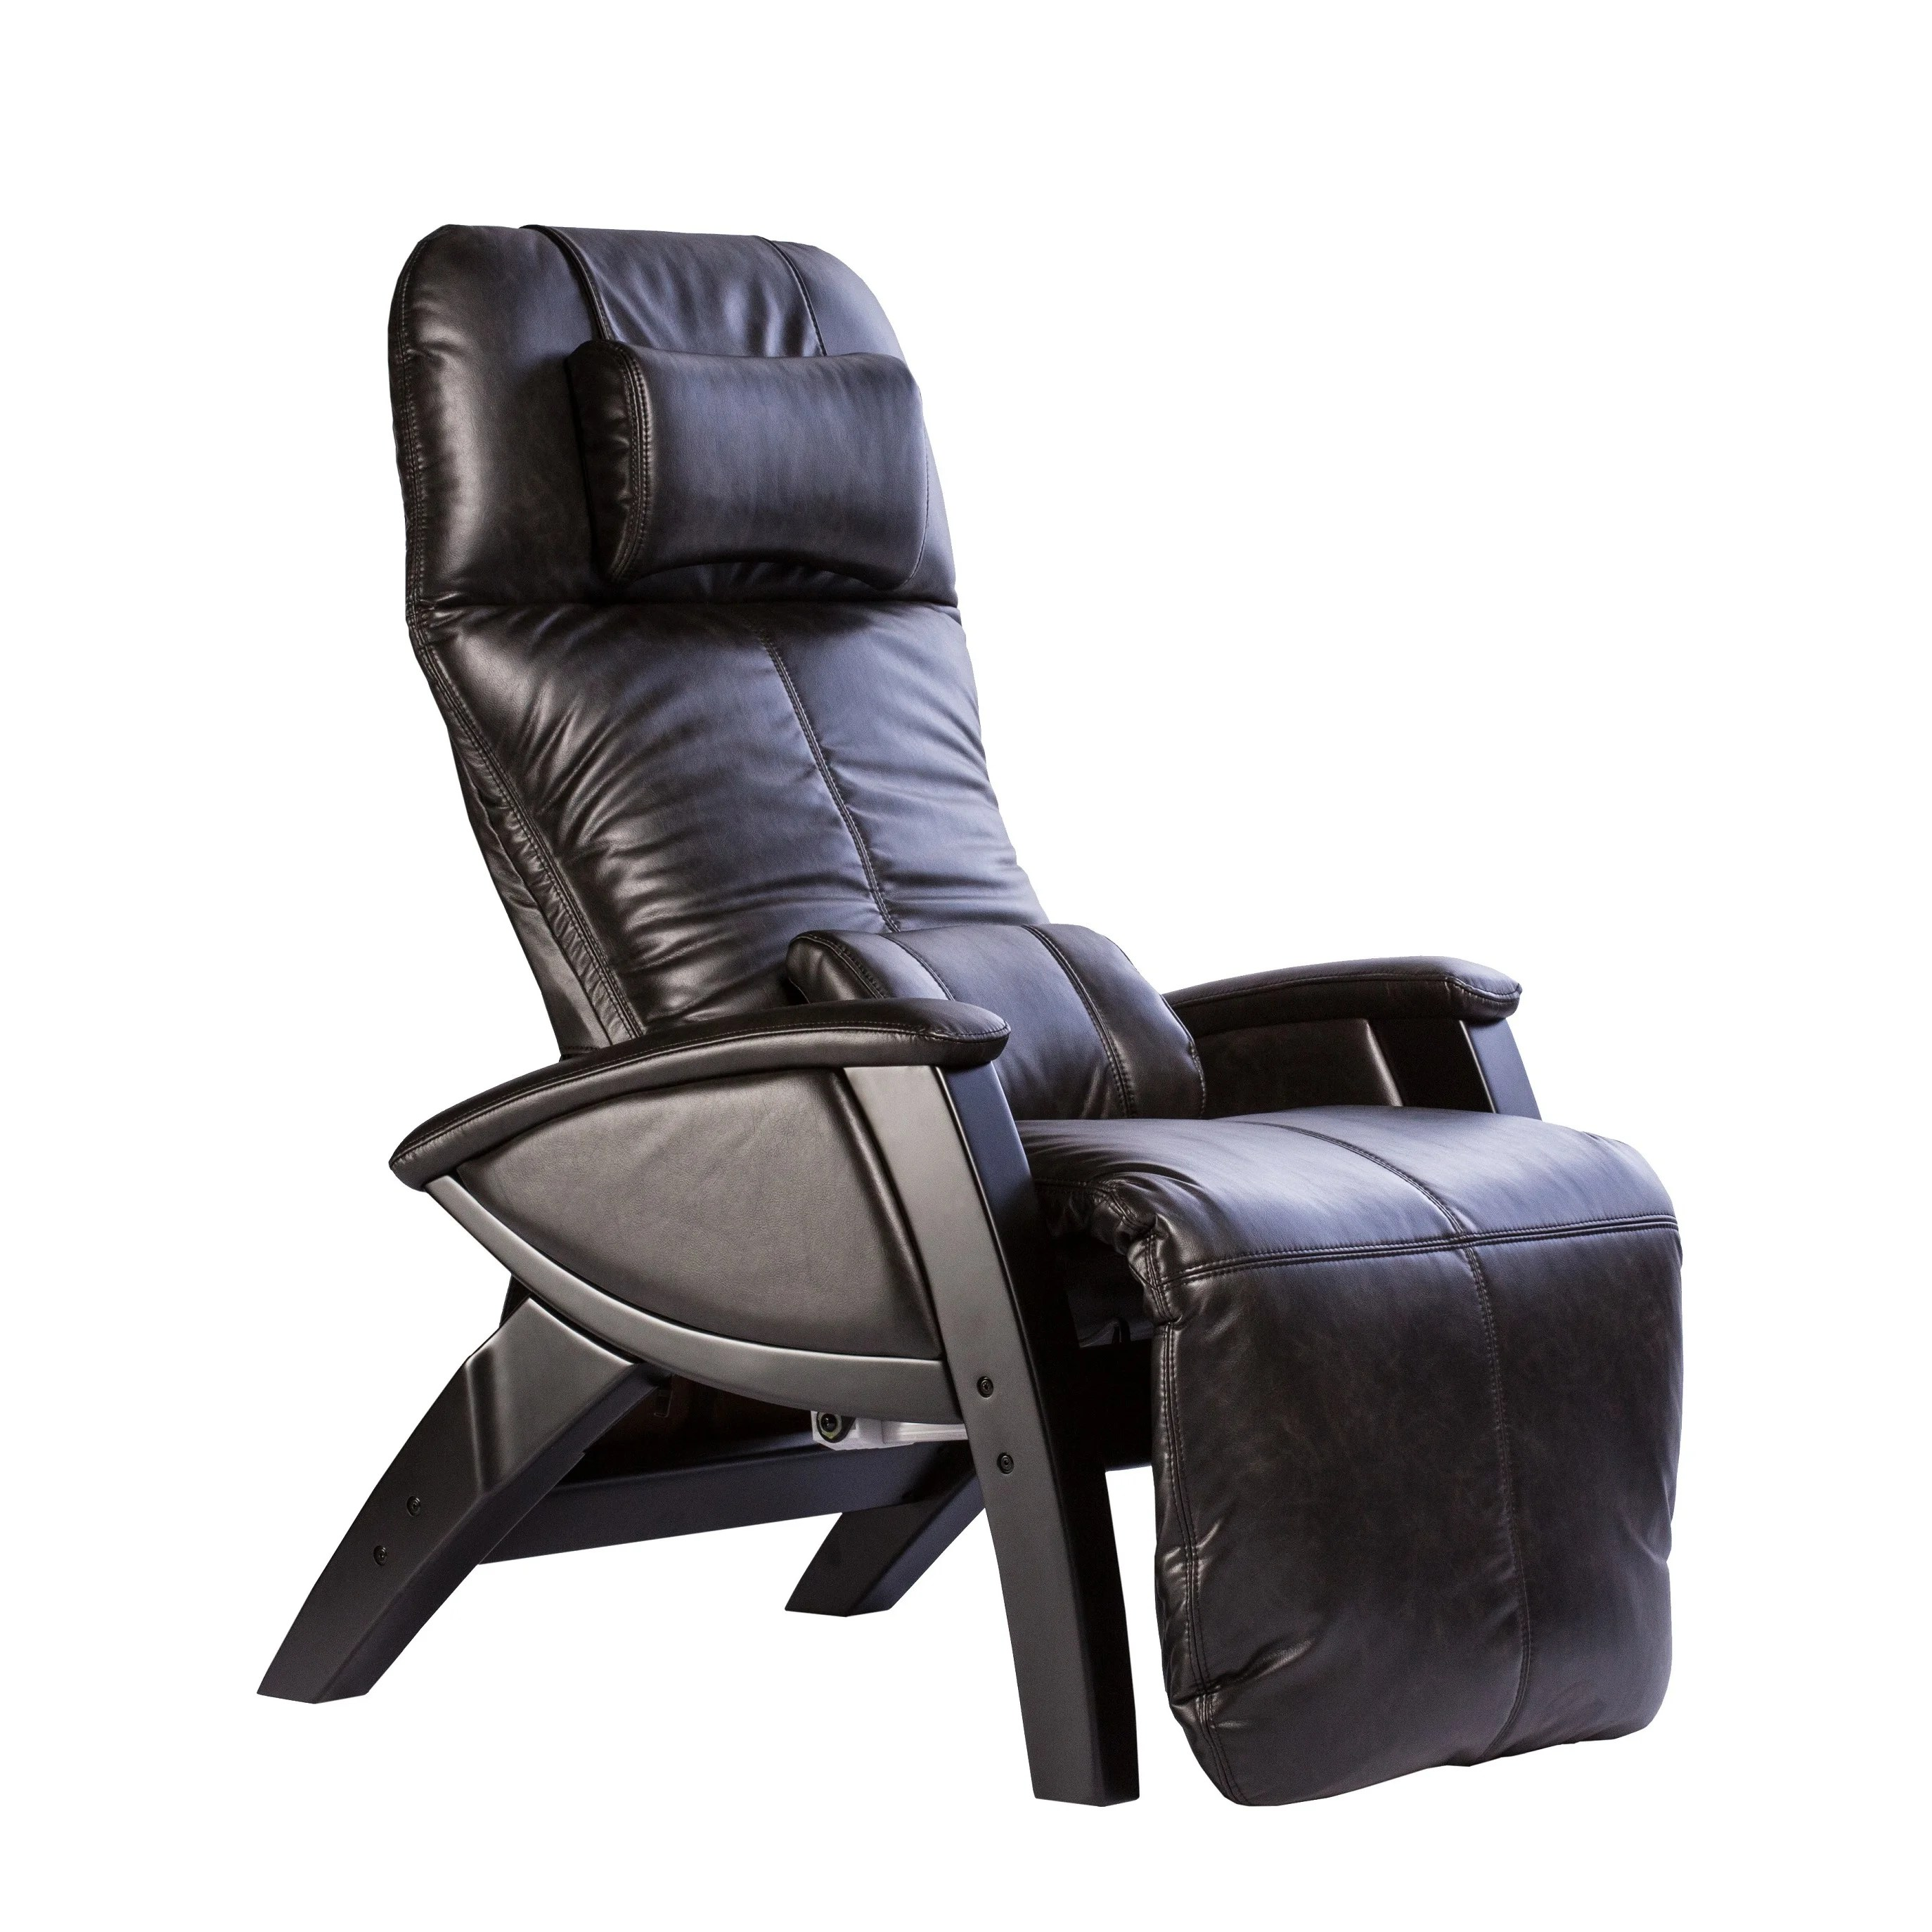 overstock zero gravity chair sport brella recliner instructions buy electric massage chairs online at our